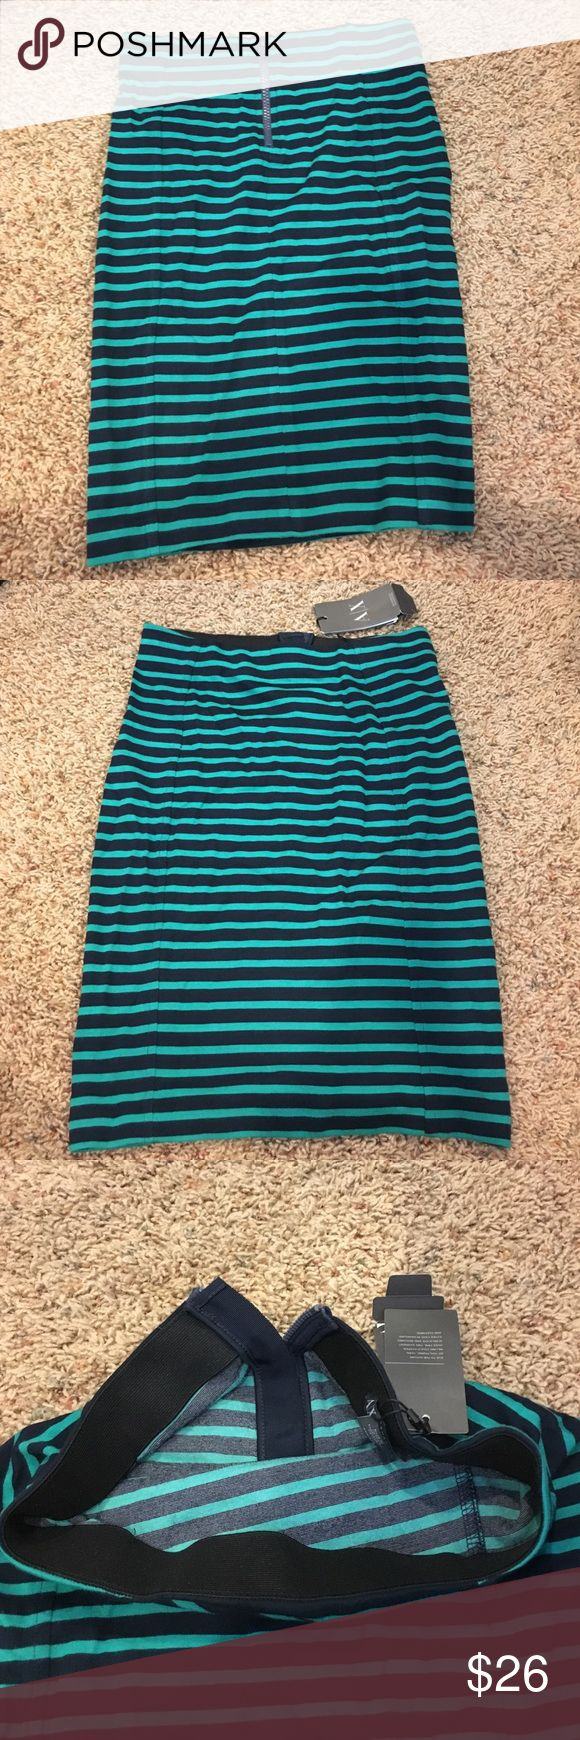 Stripped dark green and black xxs skirt I'm a size 0-2 for skirts this is a brand new skirt xxs Armani exchange pencil skirt. Elastic band waist and zipper back. A/X Armani Exchange Skirts Pencil